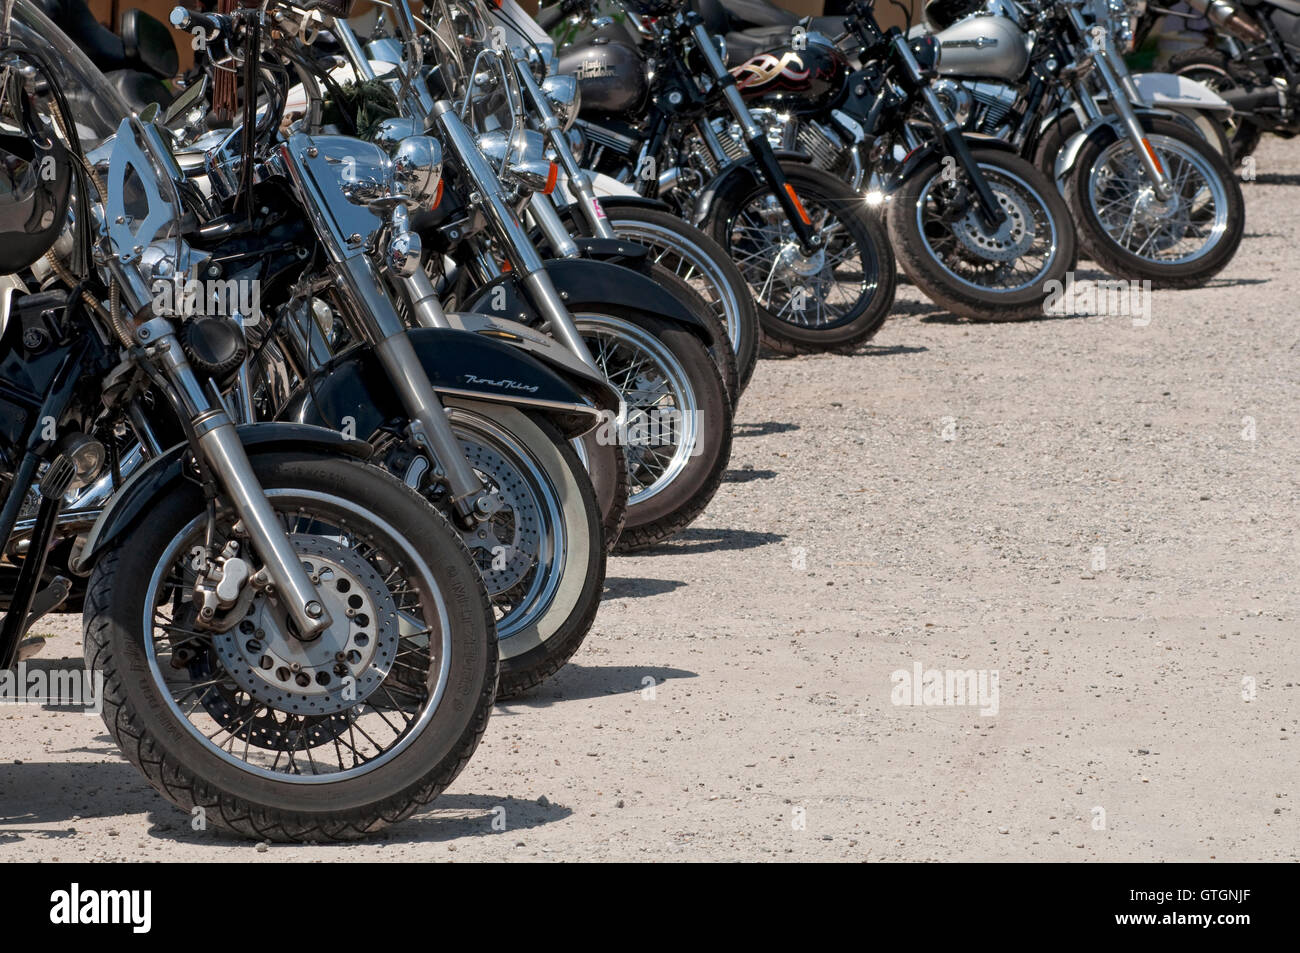 Motorbikes Parked in a Row - Stock Image